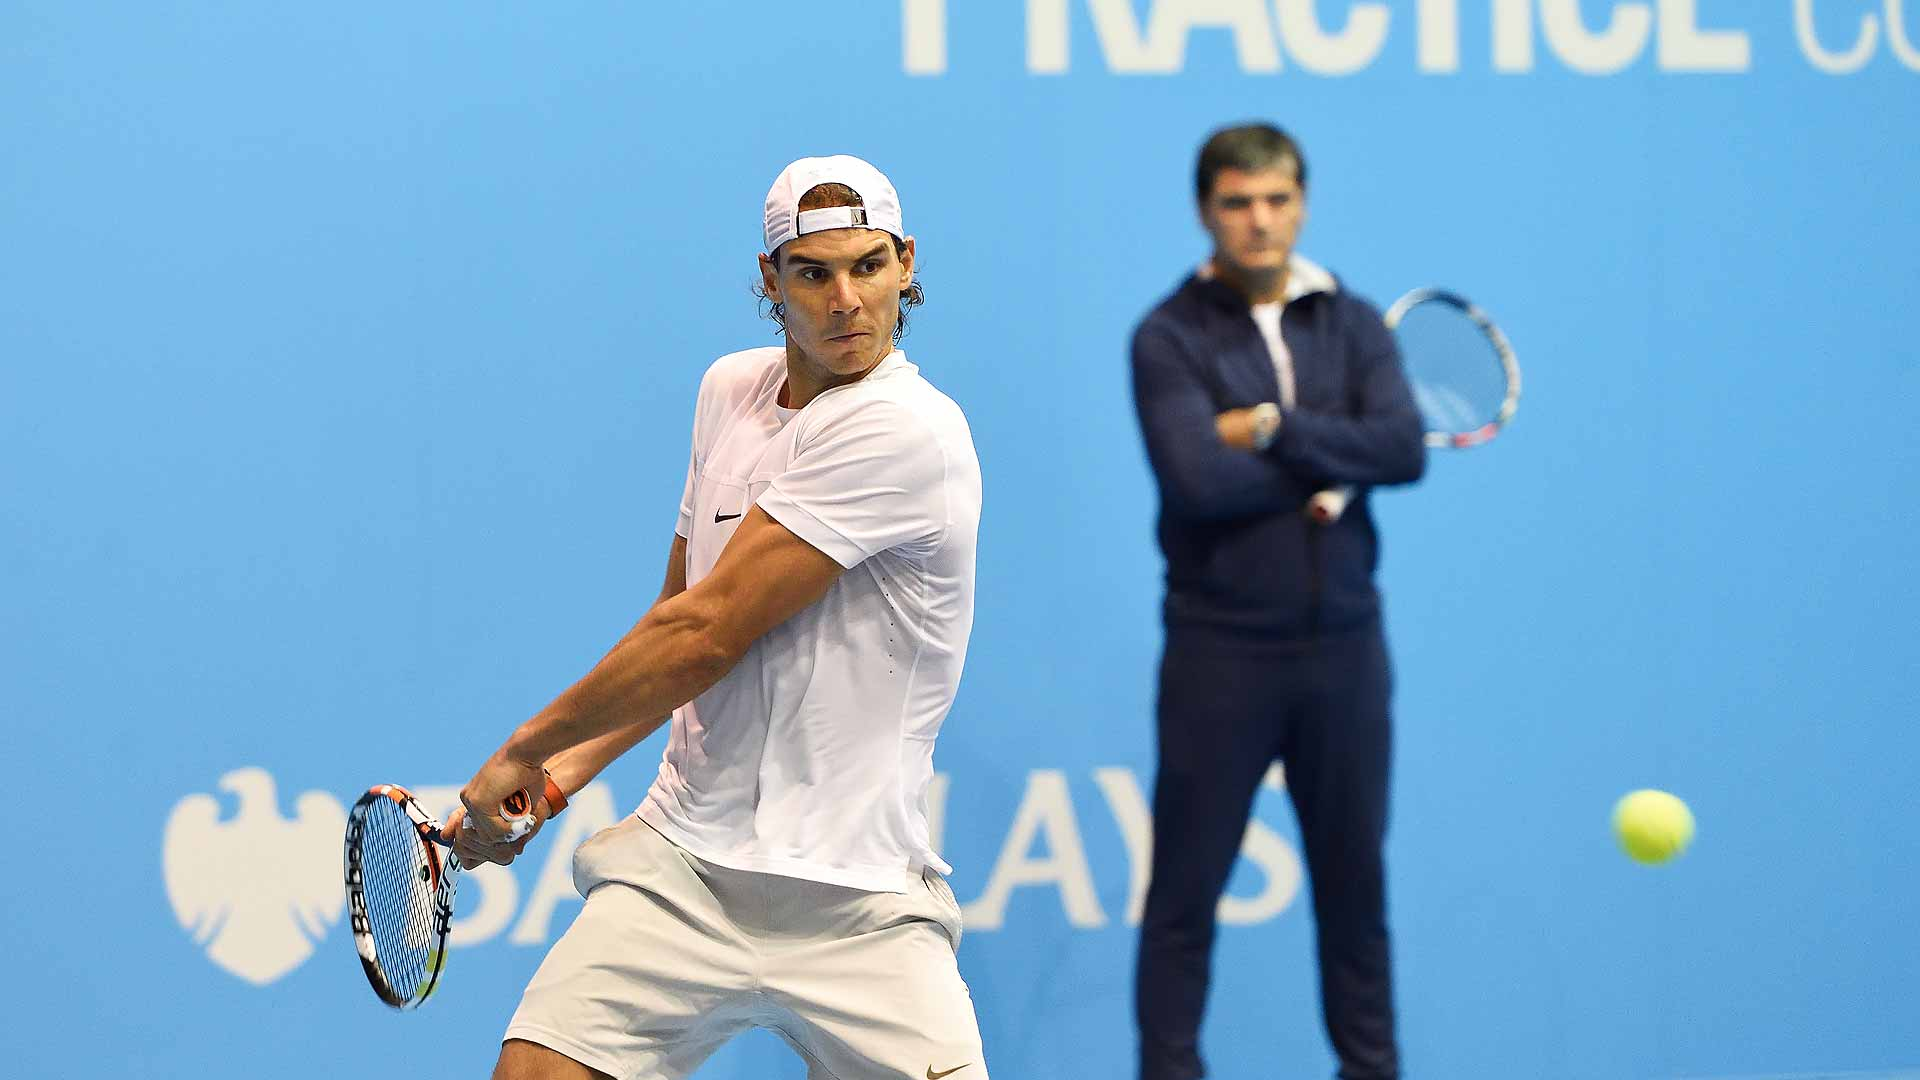 Barclays World Tour Tennis Results